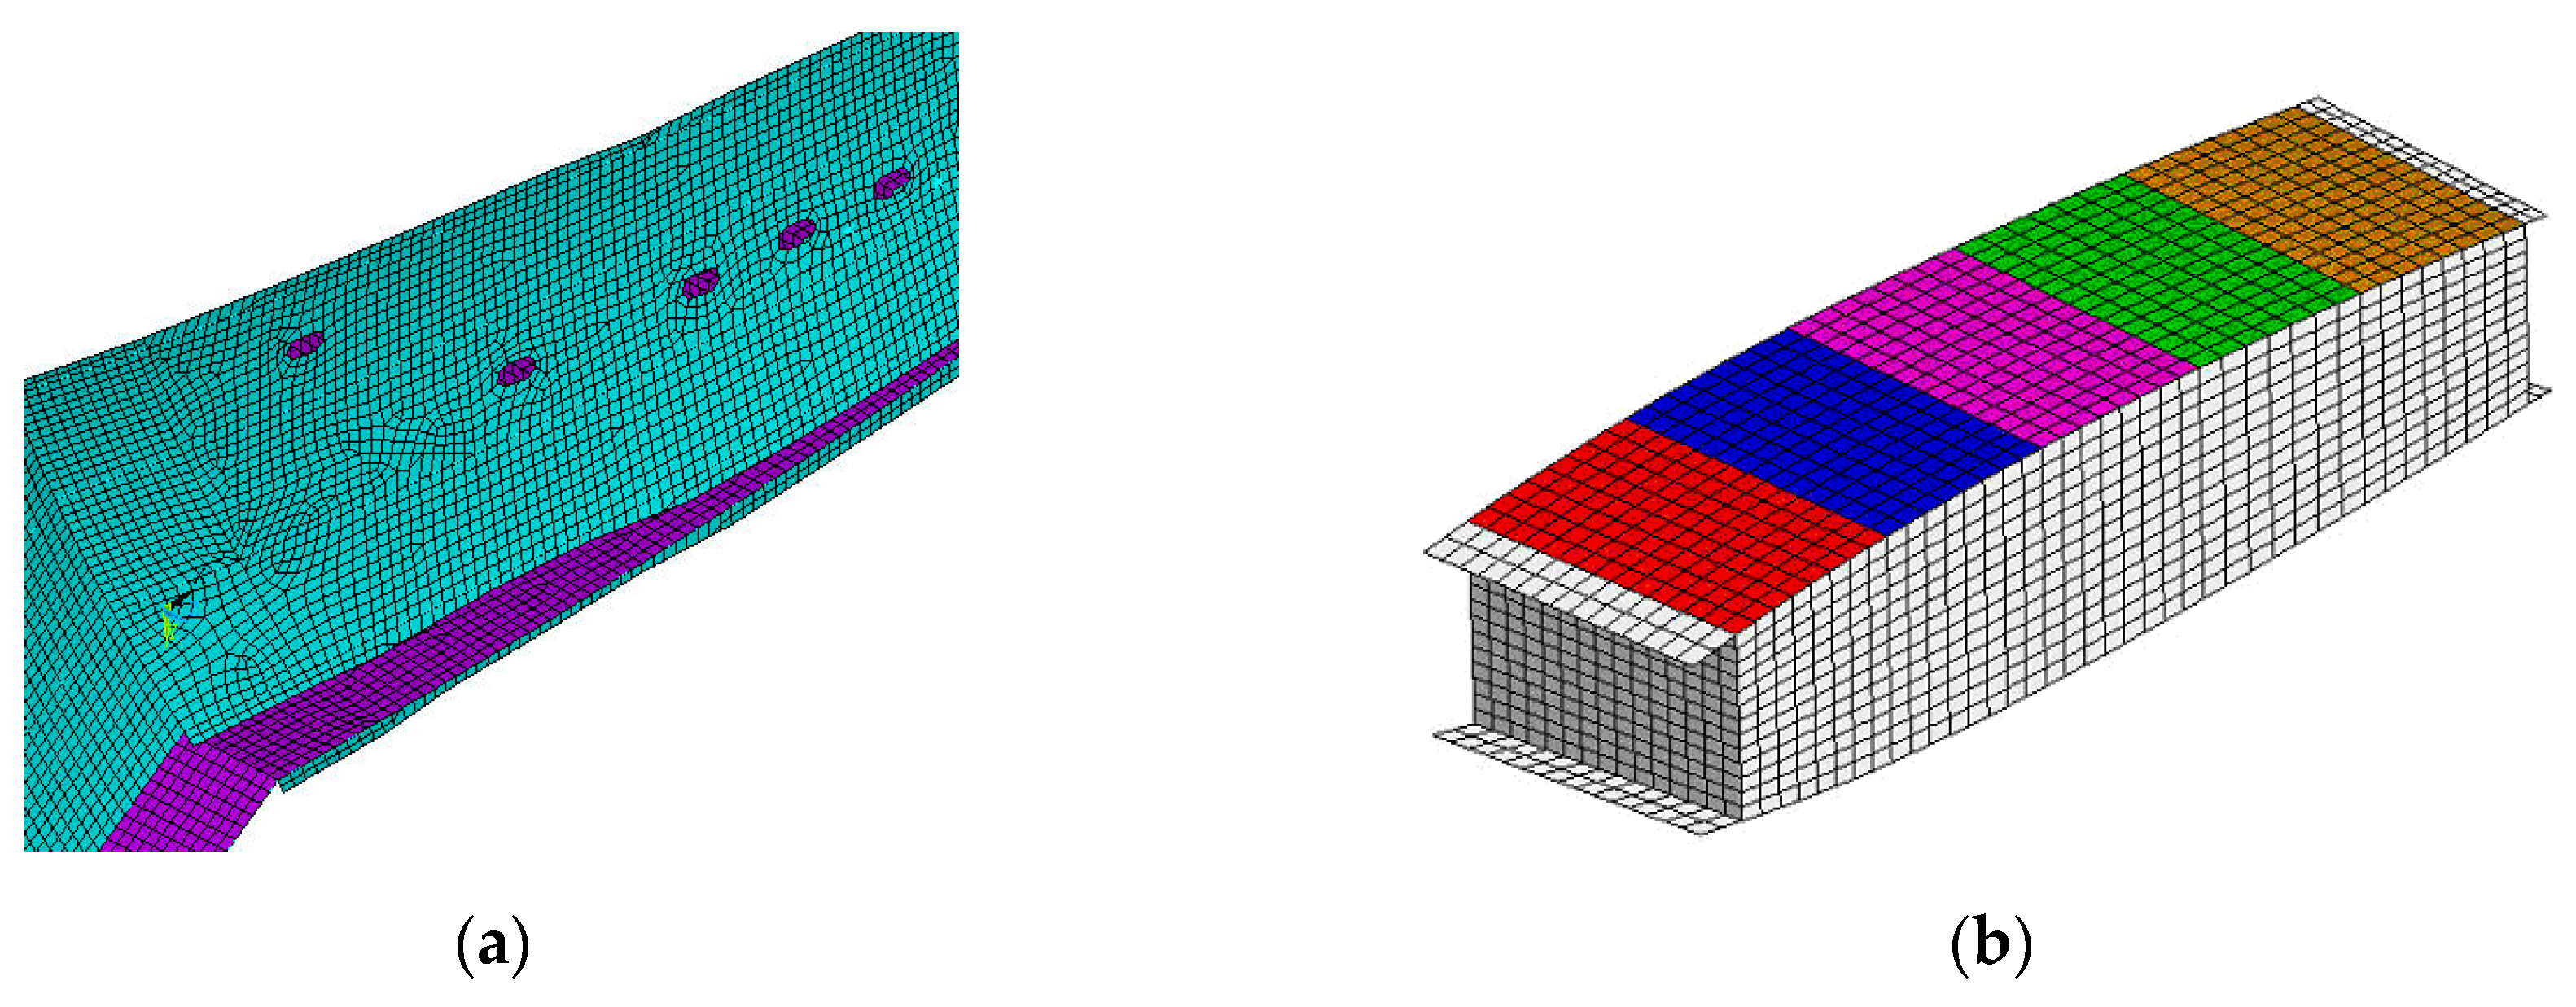 Computation Free Full Text Towards The Design Of A Multispar Composite Wing Html